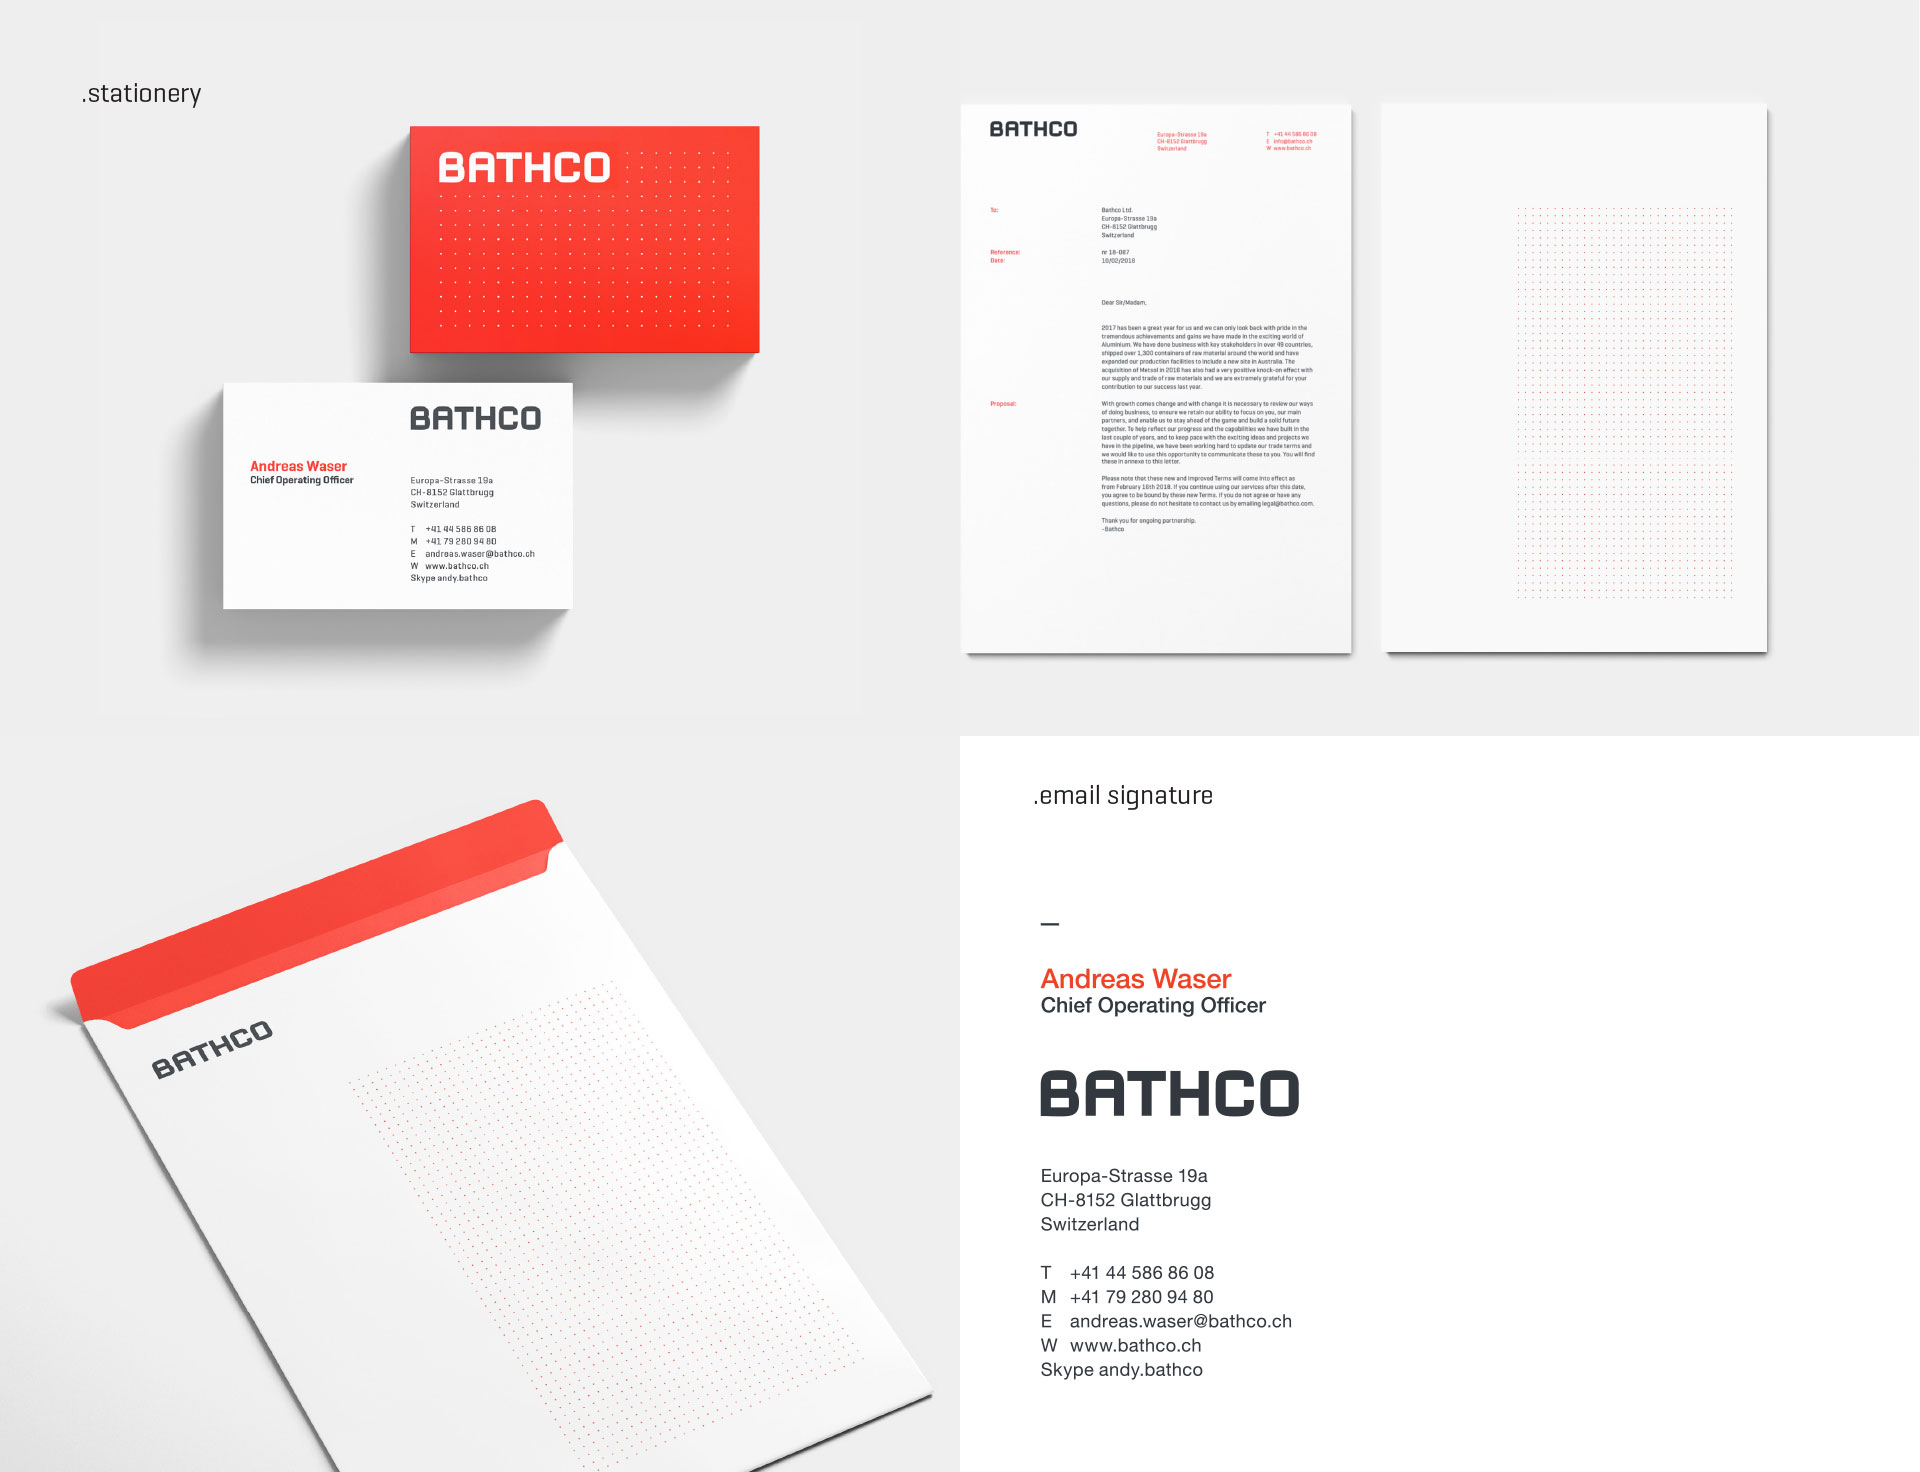 graphic design brochure design branding agency logo design visual identity web design